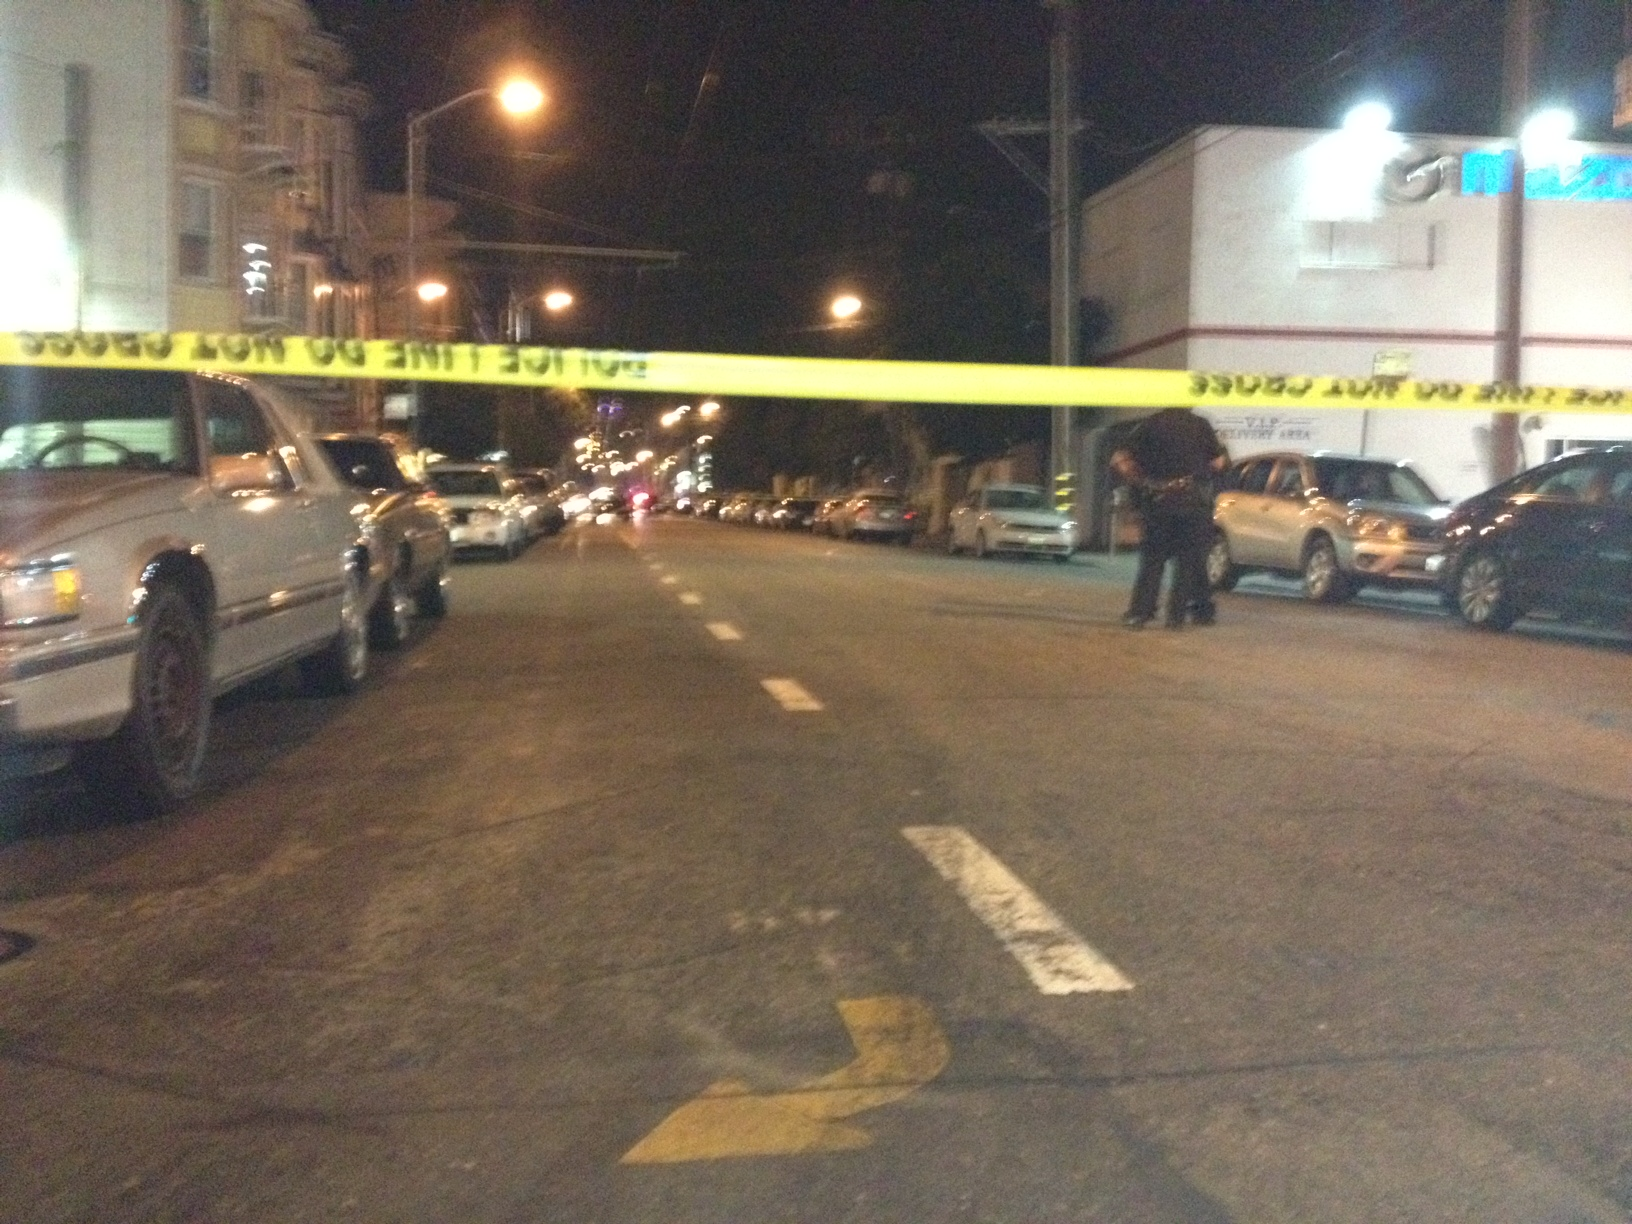 14th Street, between South Van Ness Avenue and Mission Street, was blocked off as police investigated an officer-involved shooting Thursday night.